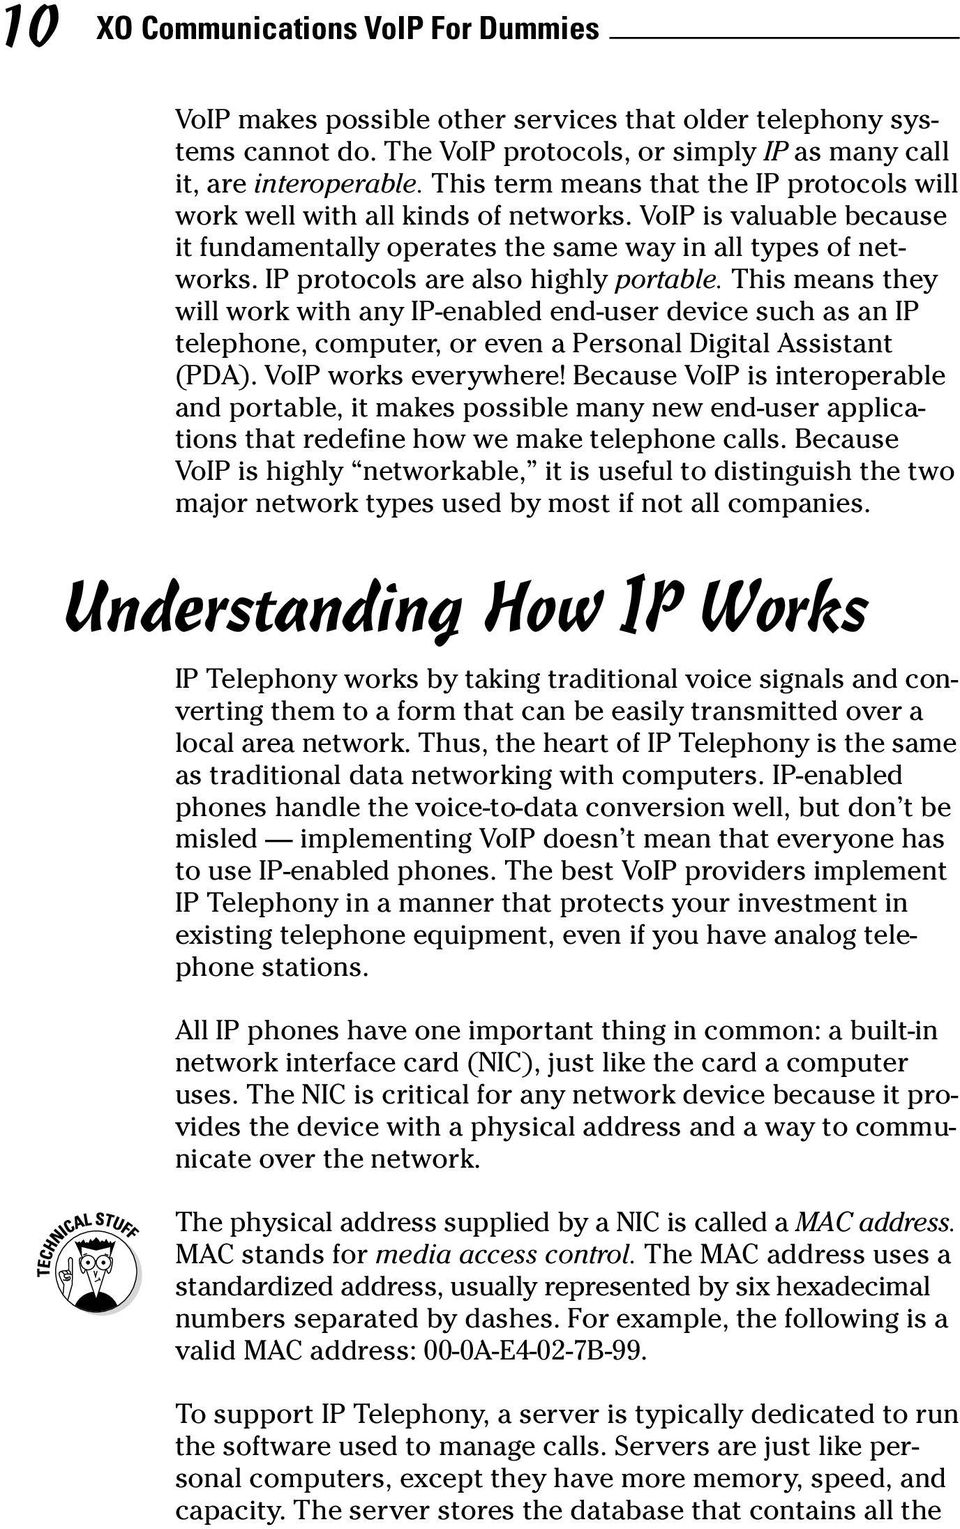 IP protocols are also highly portable. This means they will work with any IP-enabled end-user device such as an IP telephone, computer, or even a Personal Digital Assistant (PDA).